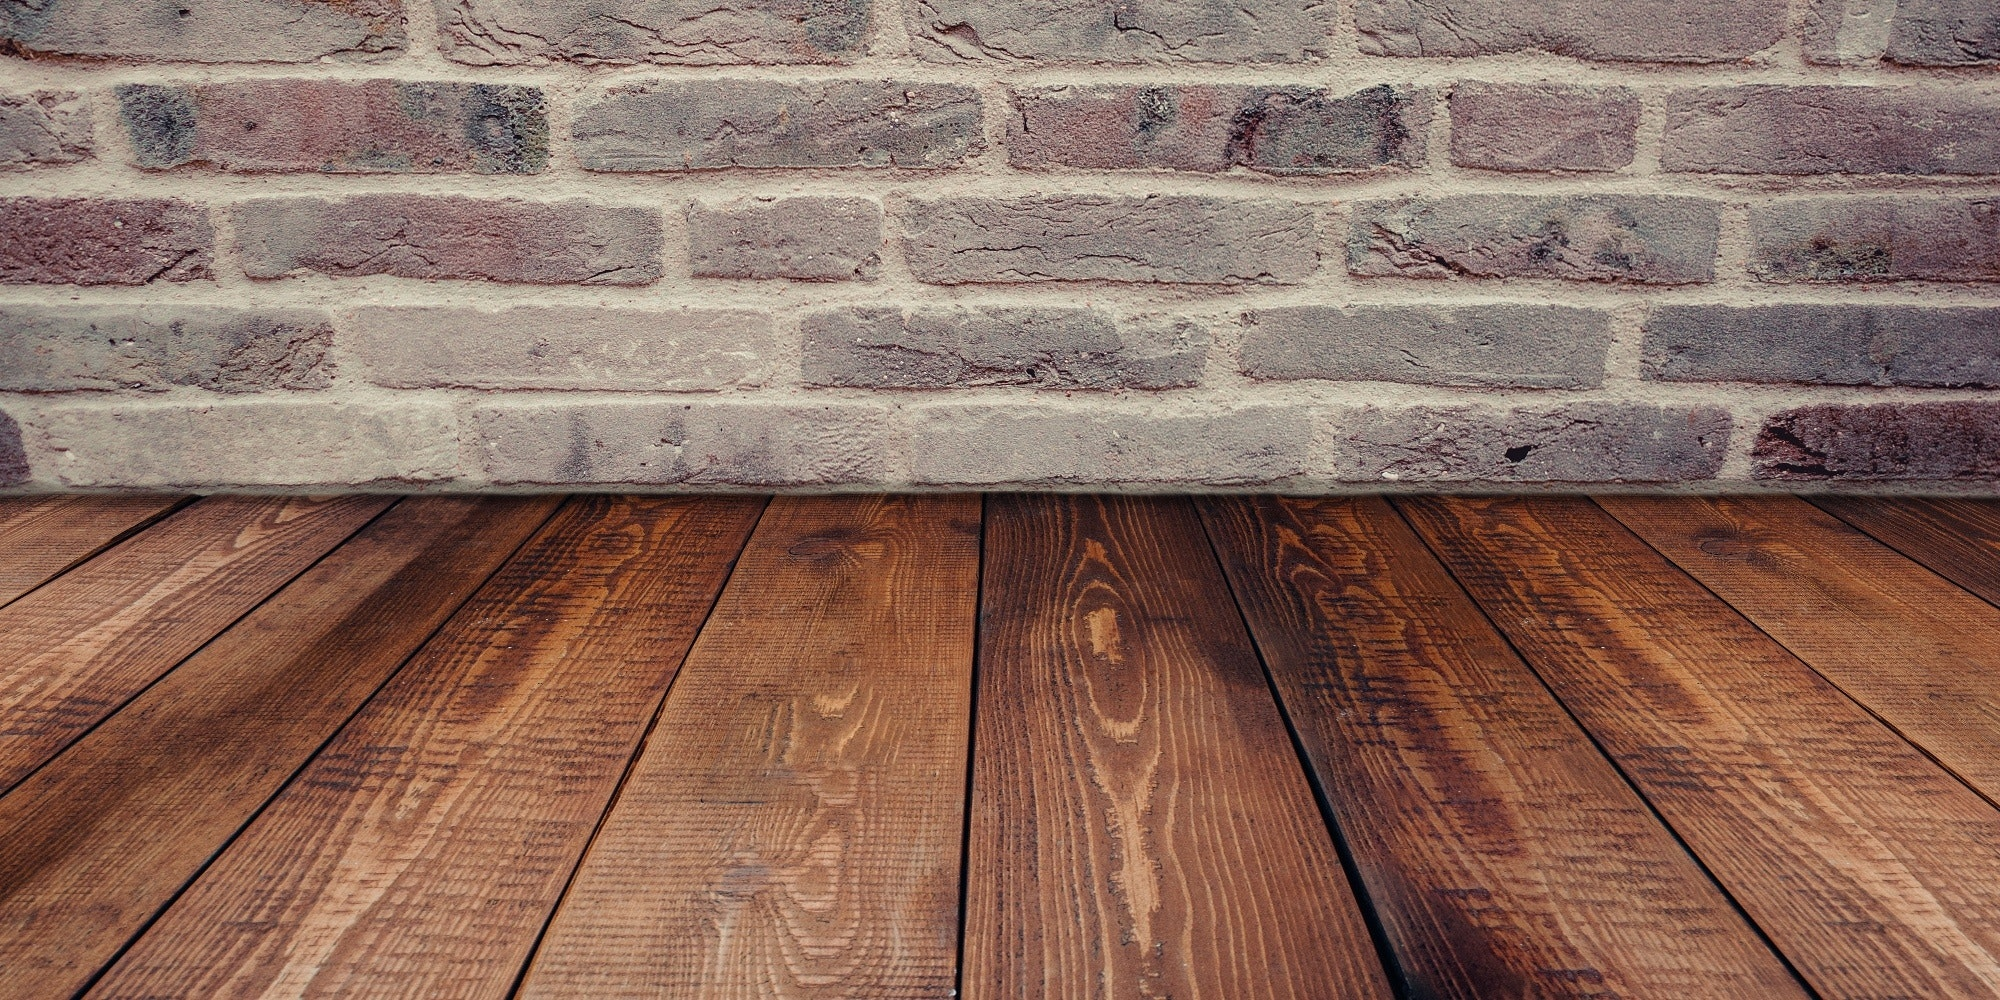 wide stained wood plank flooring against grey brick wall